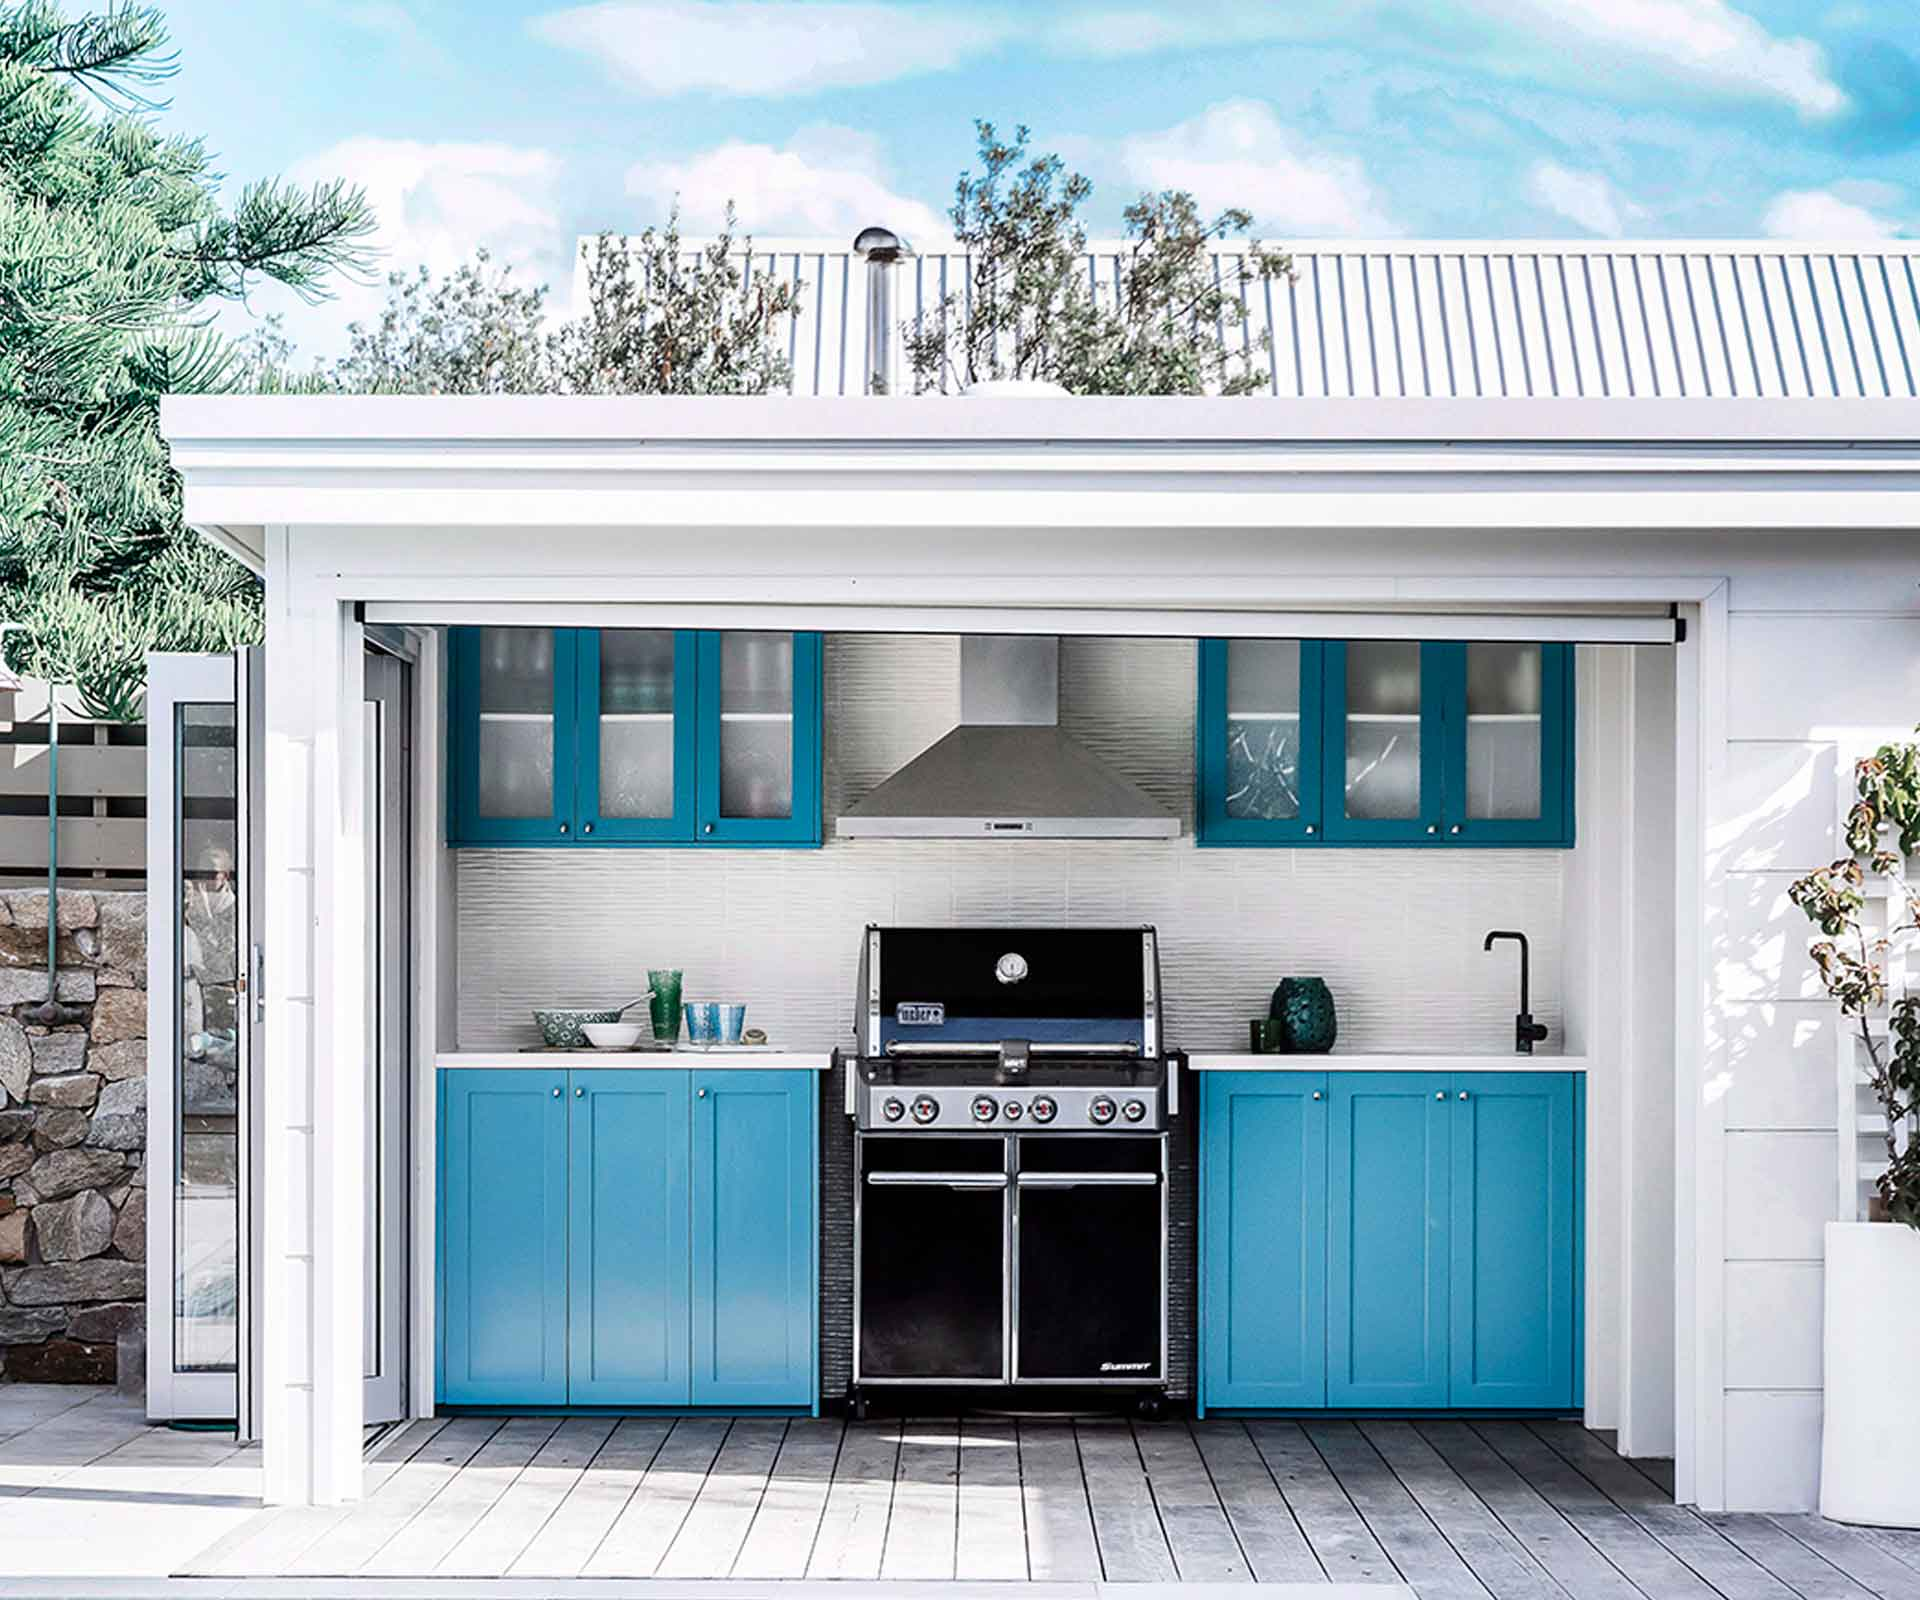 Best bbqs Australia 2019: 13 models to consider for your backyard | Homes To Love